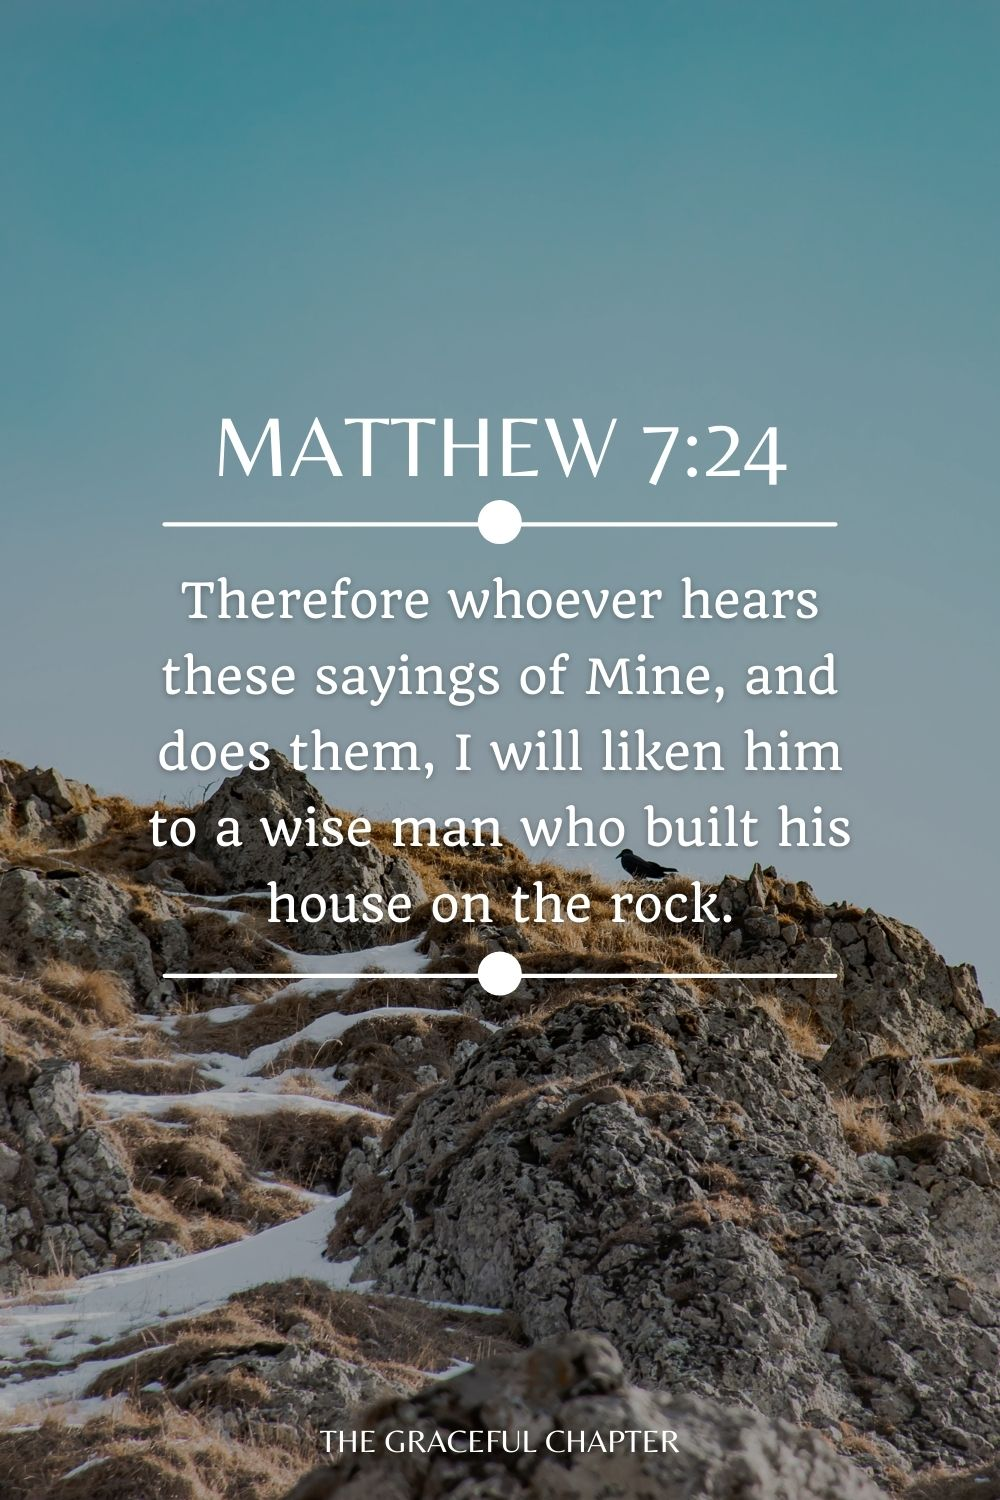 Therefore whoever hears these sayings of Mine, and does them, I will liken him to a wise man who built his house on the rock. Matthew 7:24